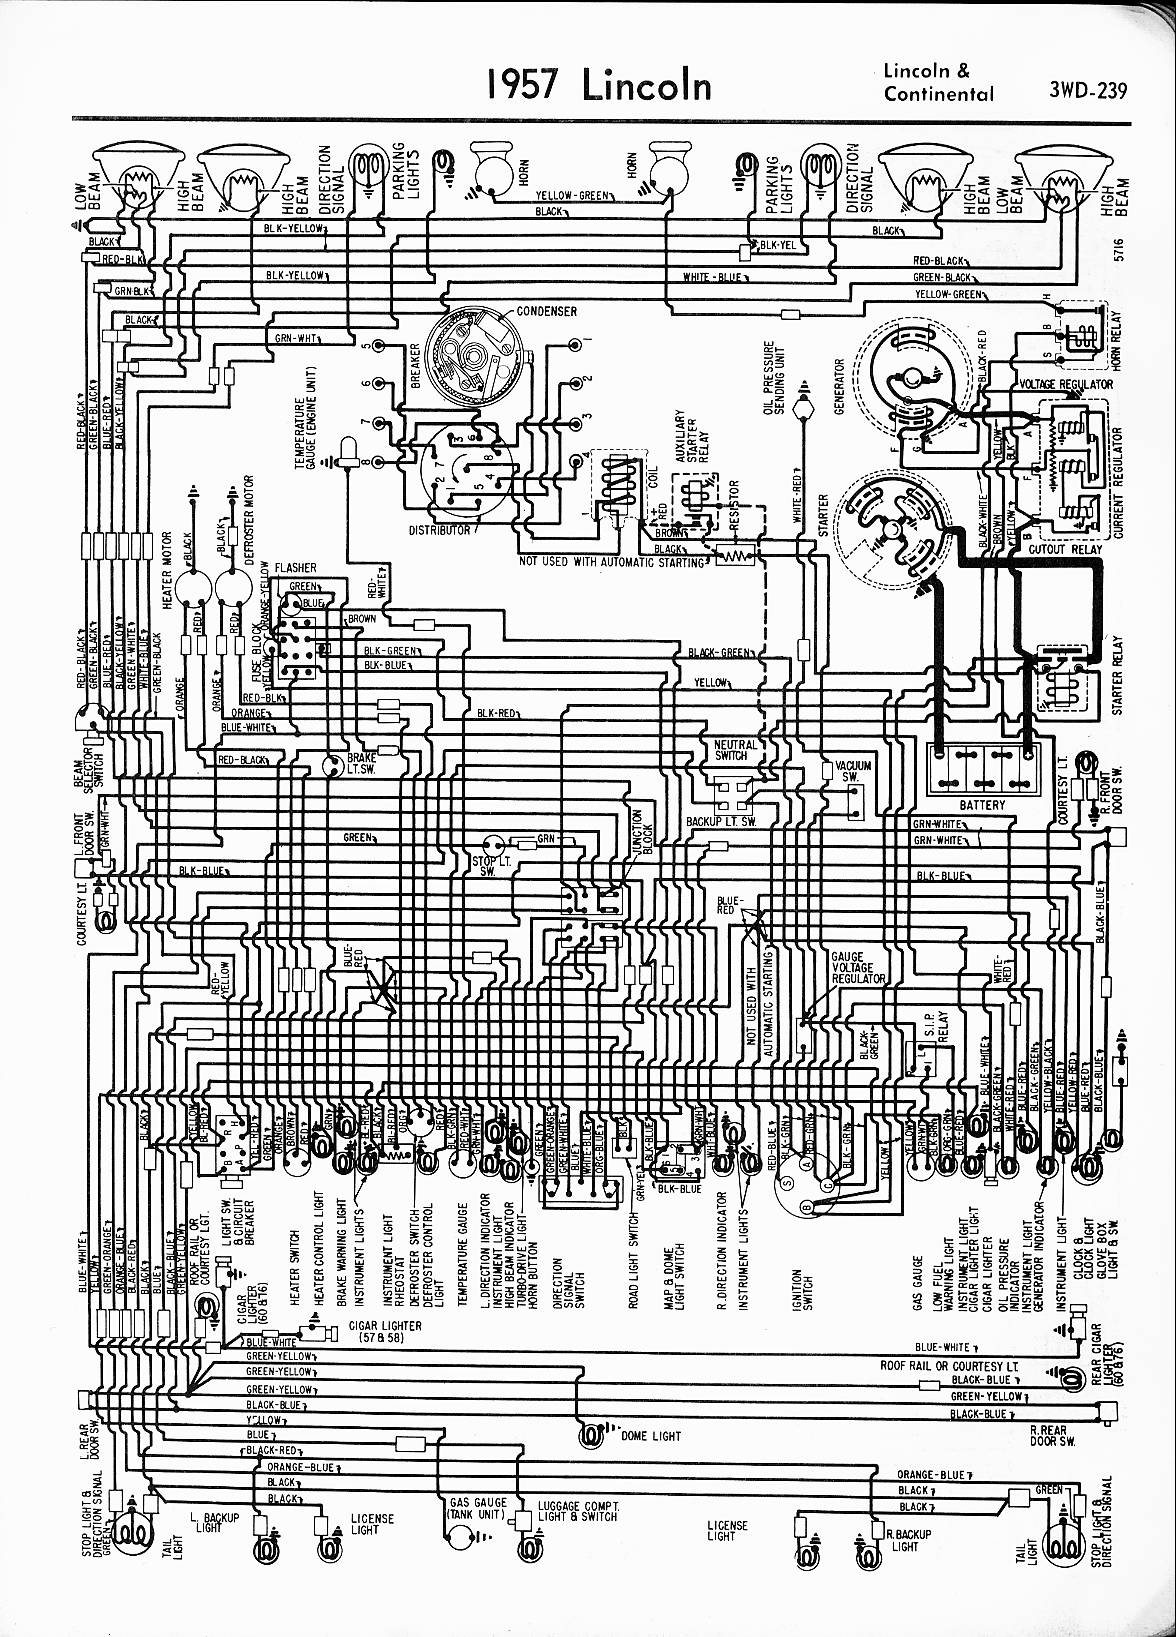 MWireLin_Lin57_z3wd 239z_001 lincoln wiring diagrams 1957 1965 Chevy Wiring Harness Diagram at bayanpartner.co